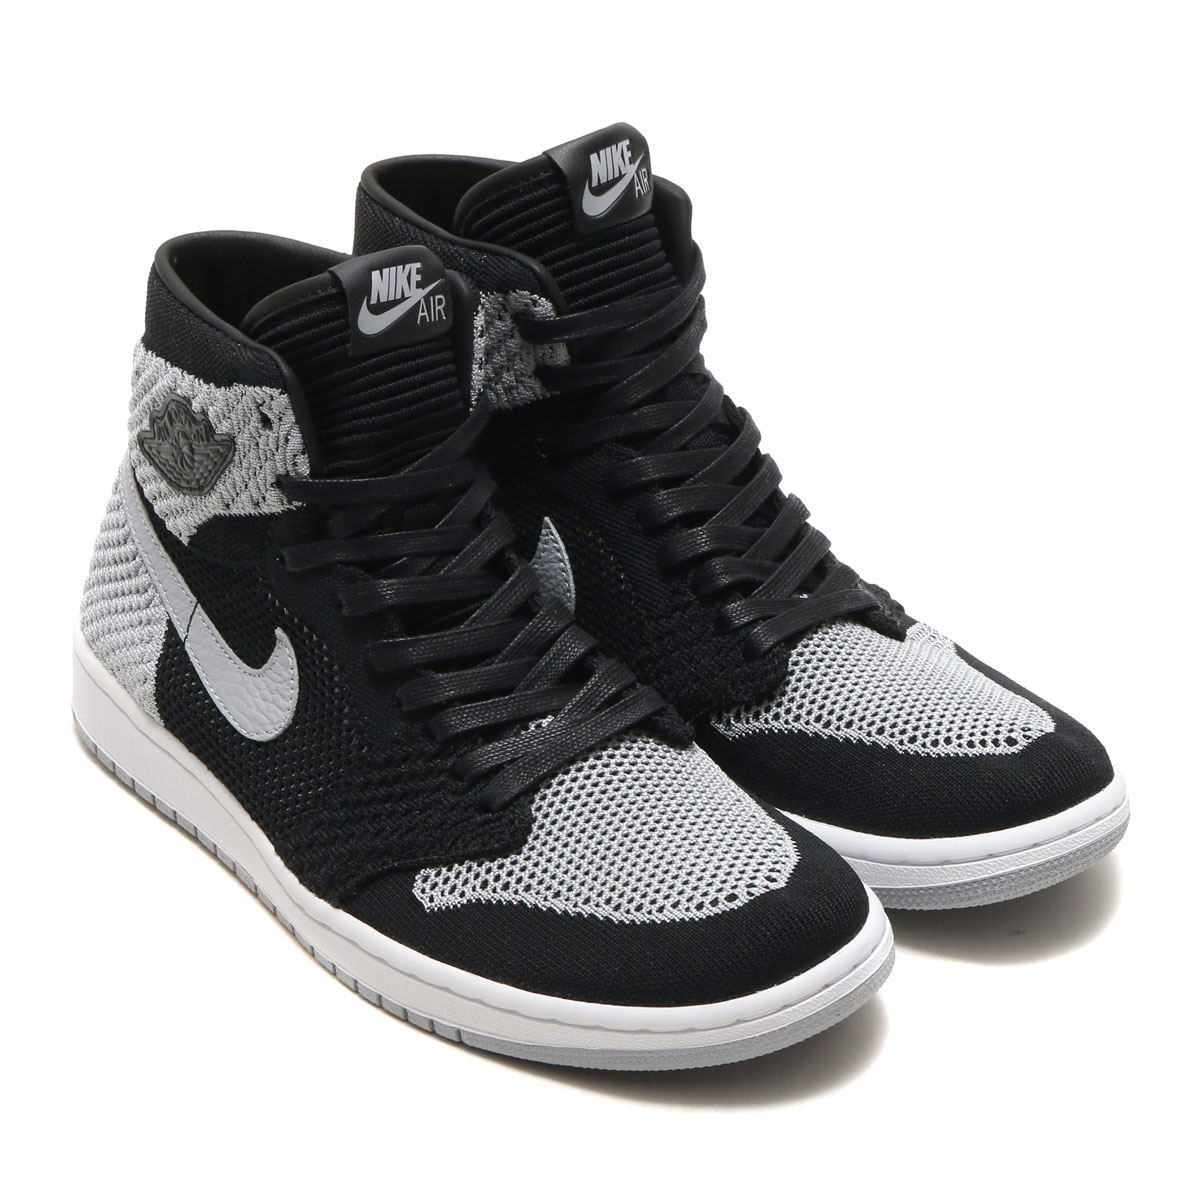 d312b01a387 NIKE AIR JORDAN 1 RETRO HI FLYKNIT (Nike Air Jordan 1 nostalgic high fried  food knit) (BLACK WOLF GREY-WHITE) 18SP-S